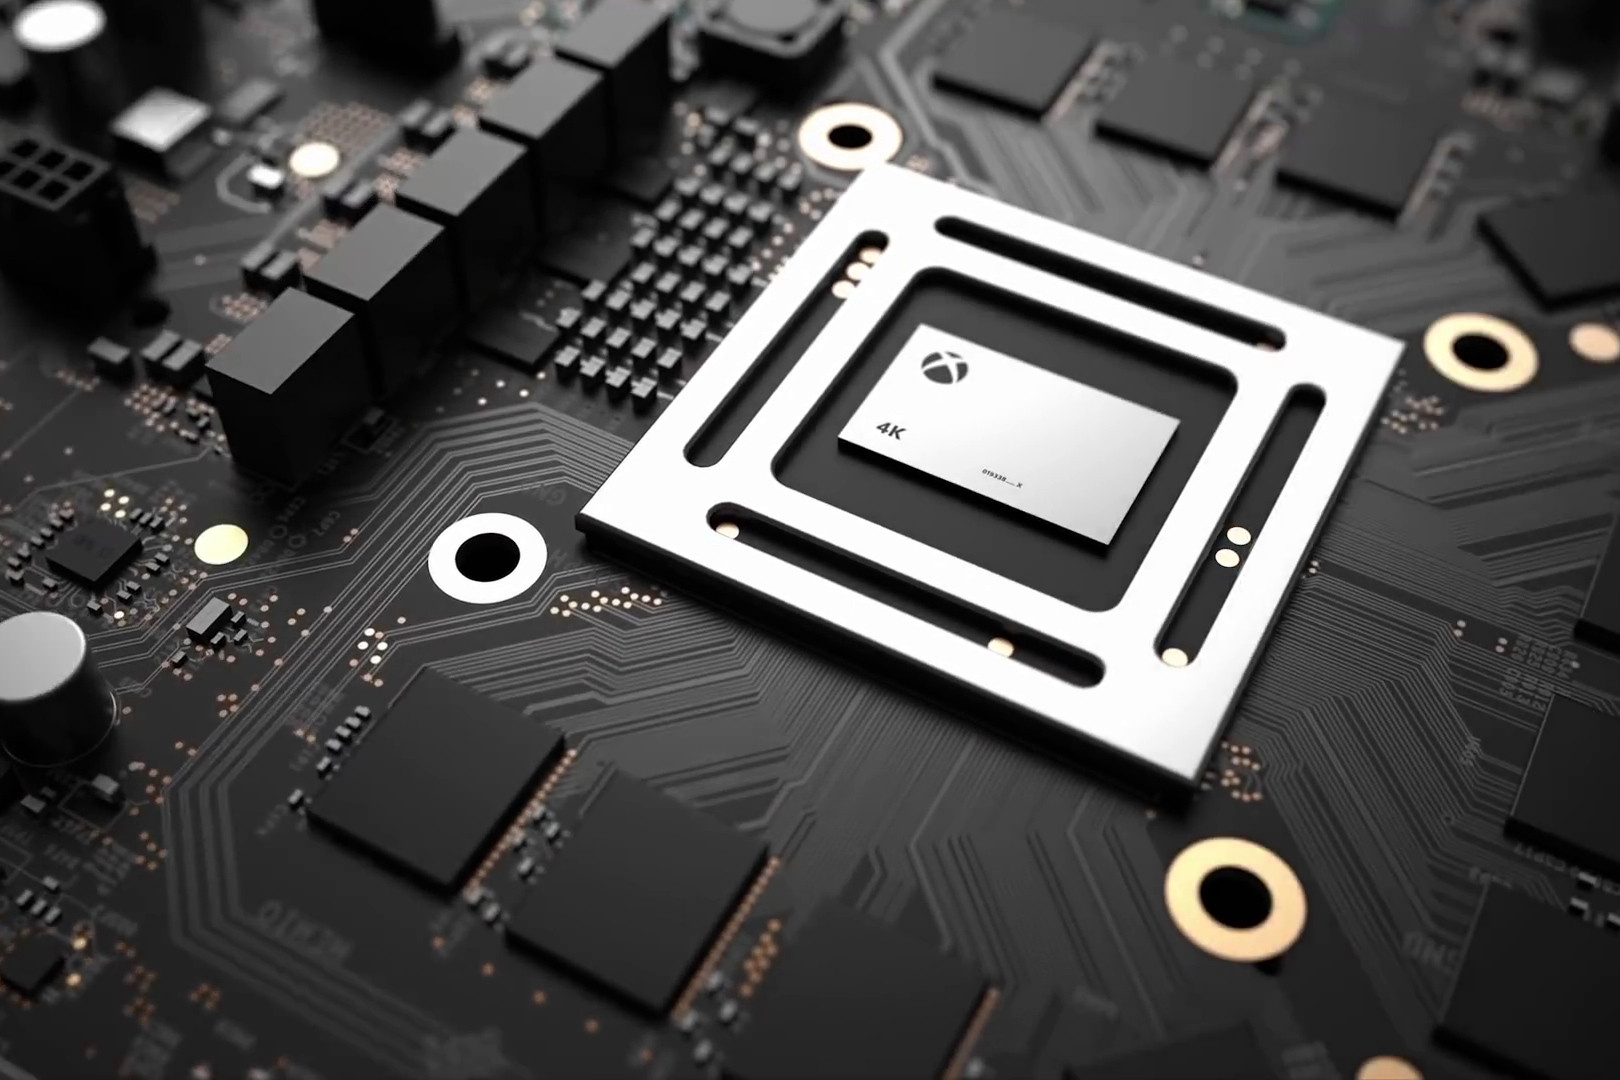 Microsoft Has No Plans To Make Games Exclusively For 4K-Capable Xbox Project Scorpio